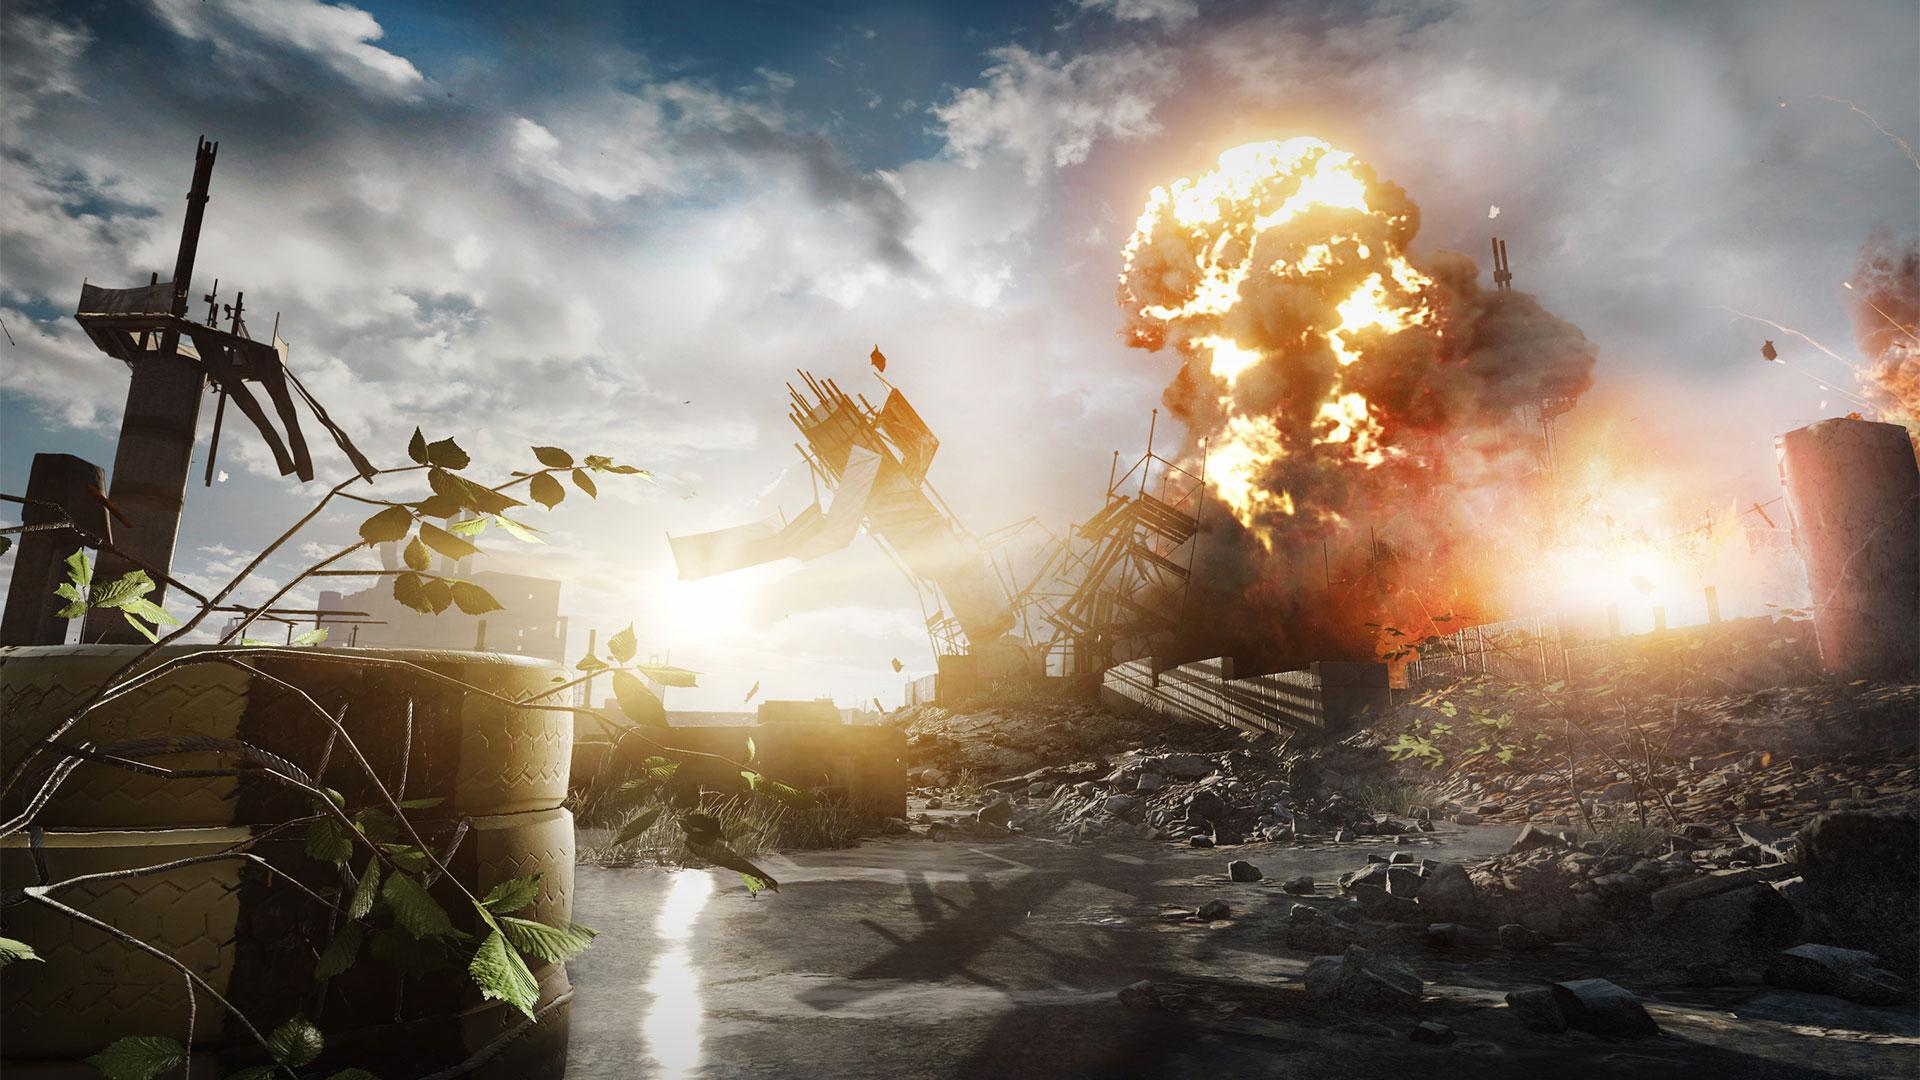 HD Battlefield 4 Wallpapers Live DHG75 WP